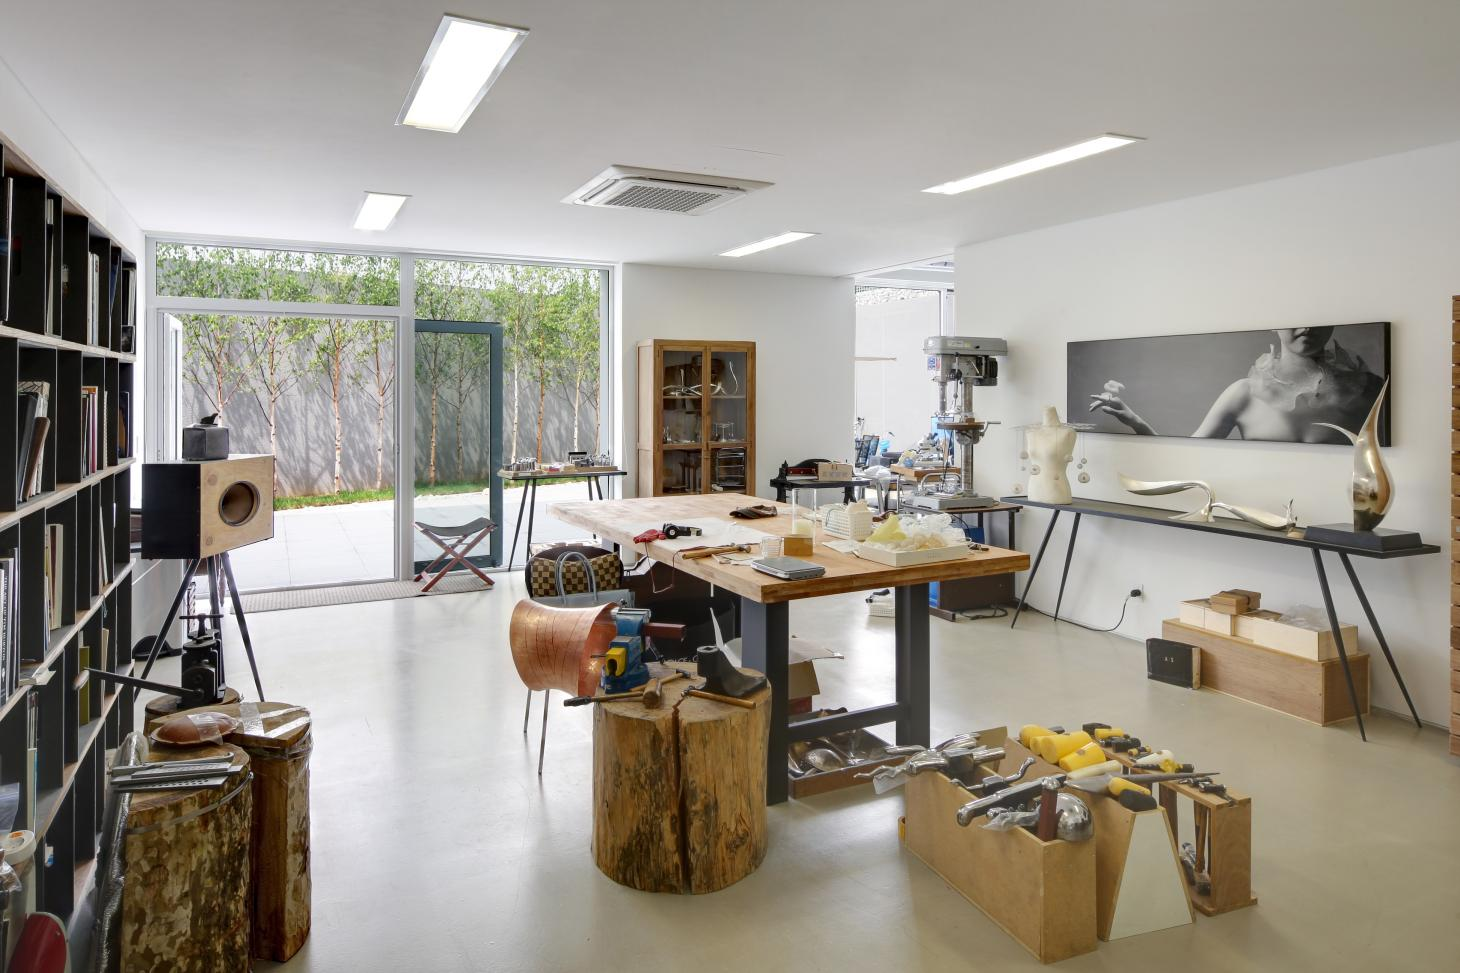 South Korean rounded house's workshop space looking out to the countryside